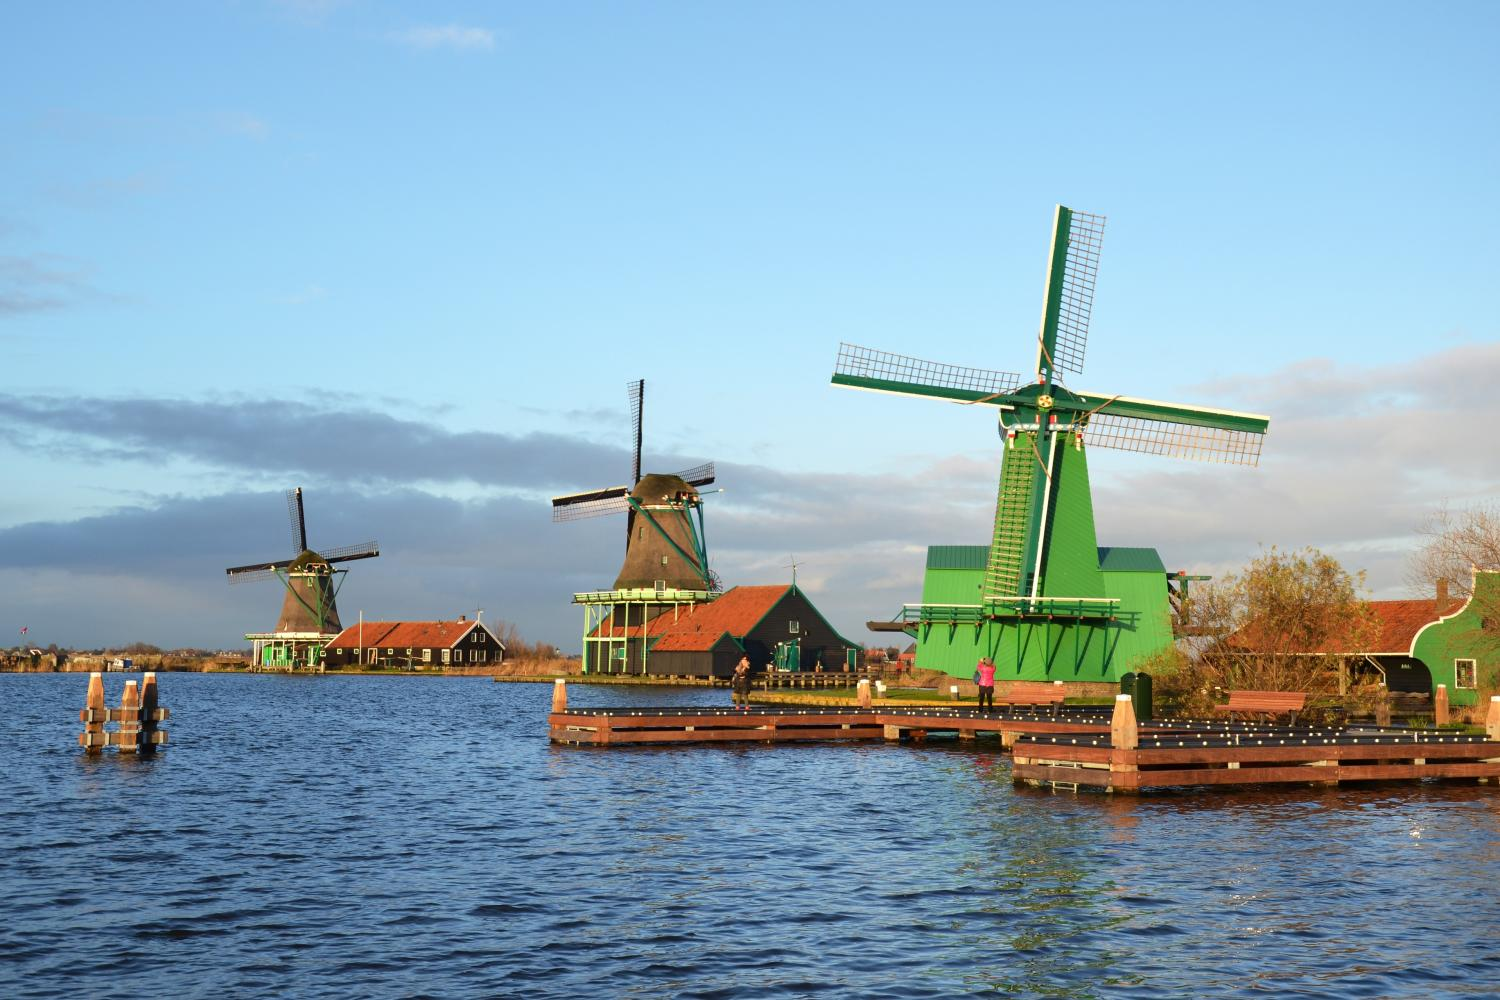 Sightseeing tour and canal cruise to Volendam, Edam and windmills